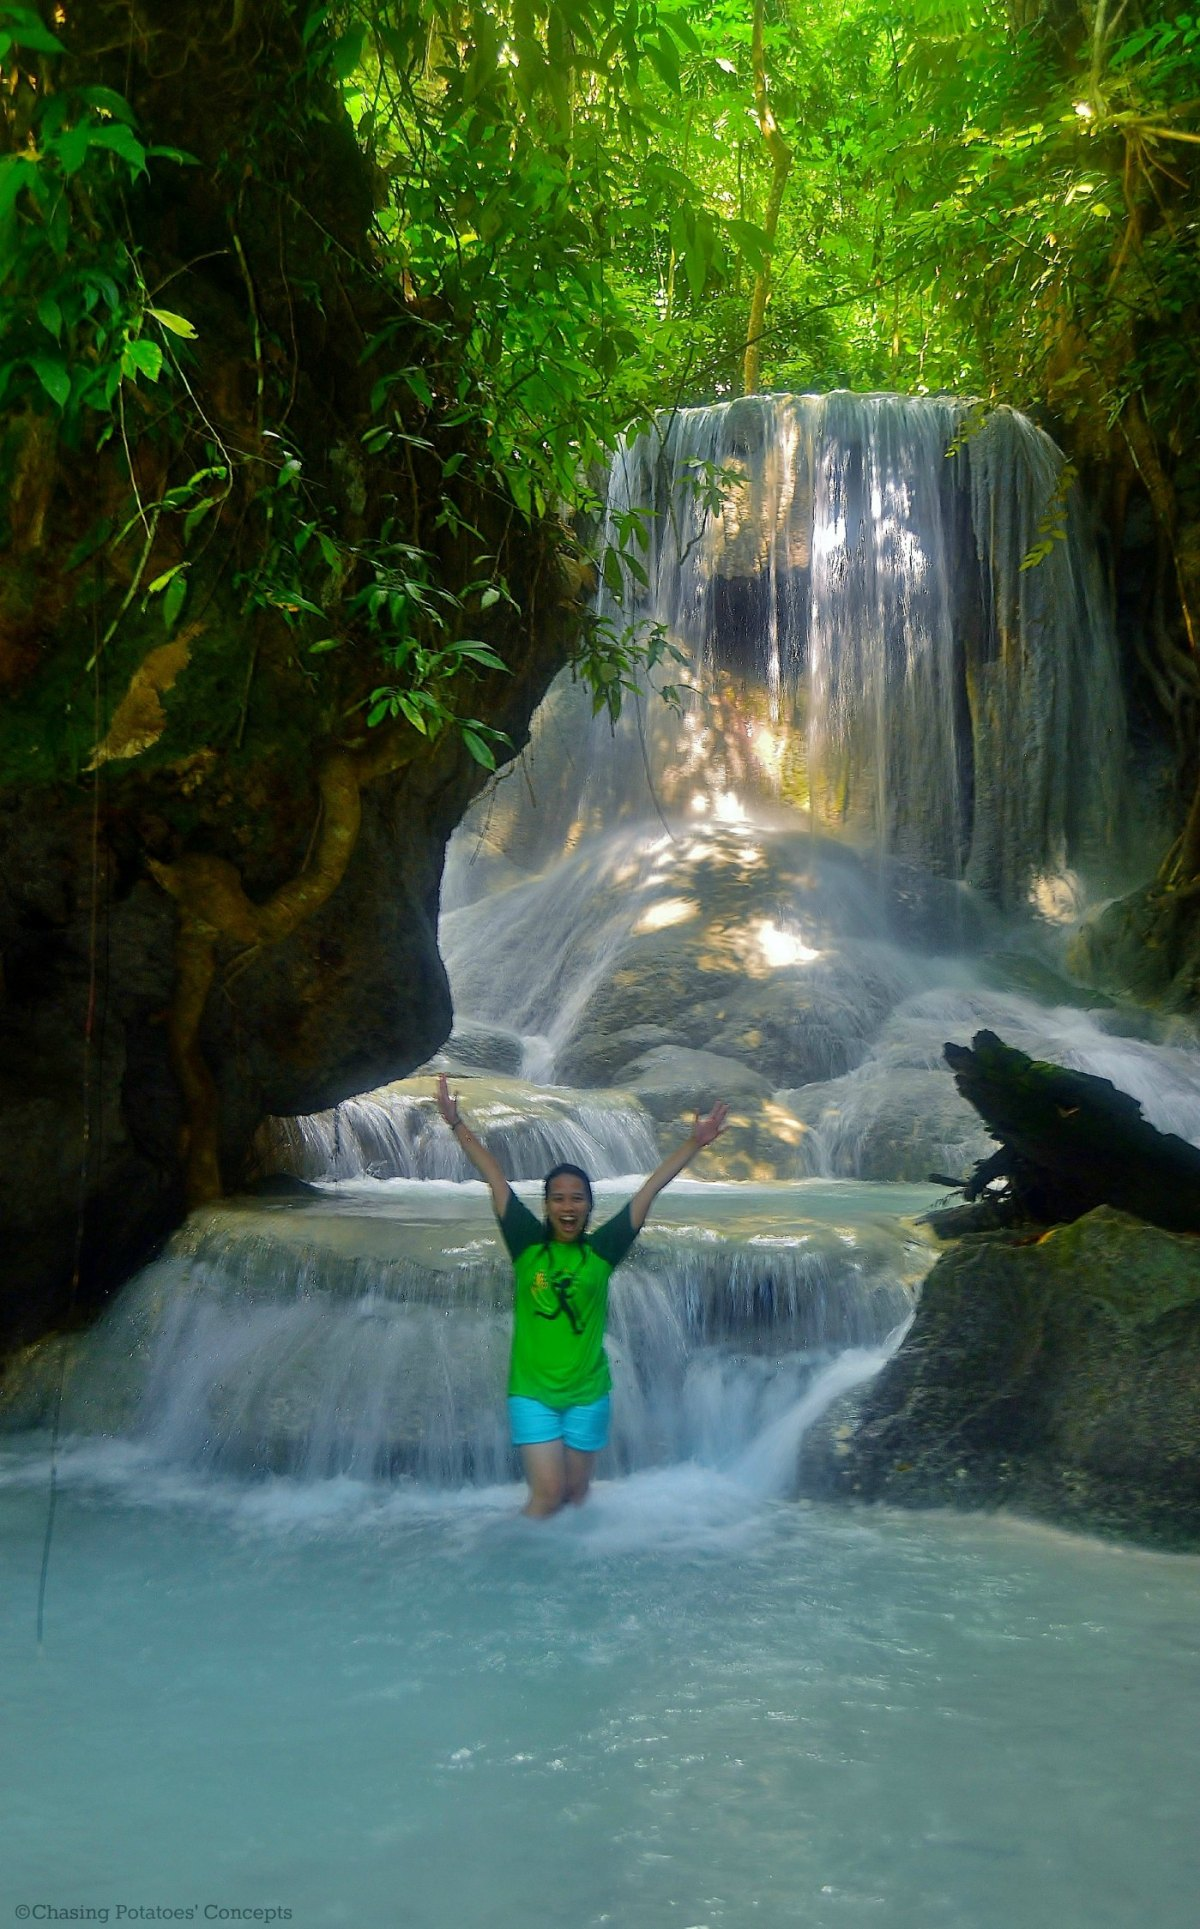 Waterfalls Exploration in Southern Cebu for Less than 500 Pesos (SECOND STOP)